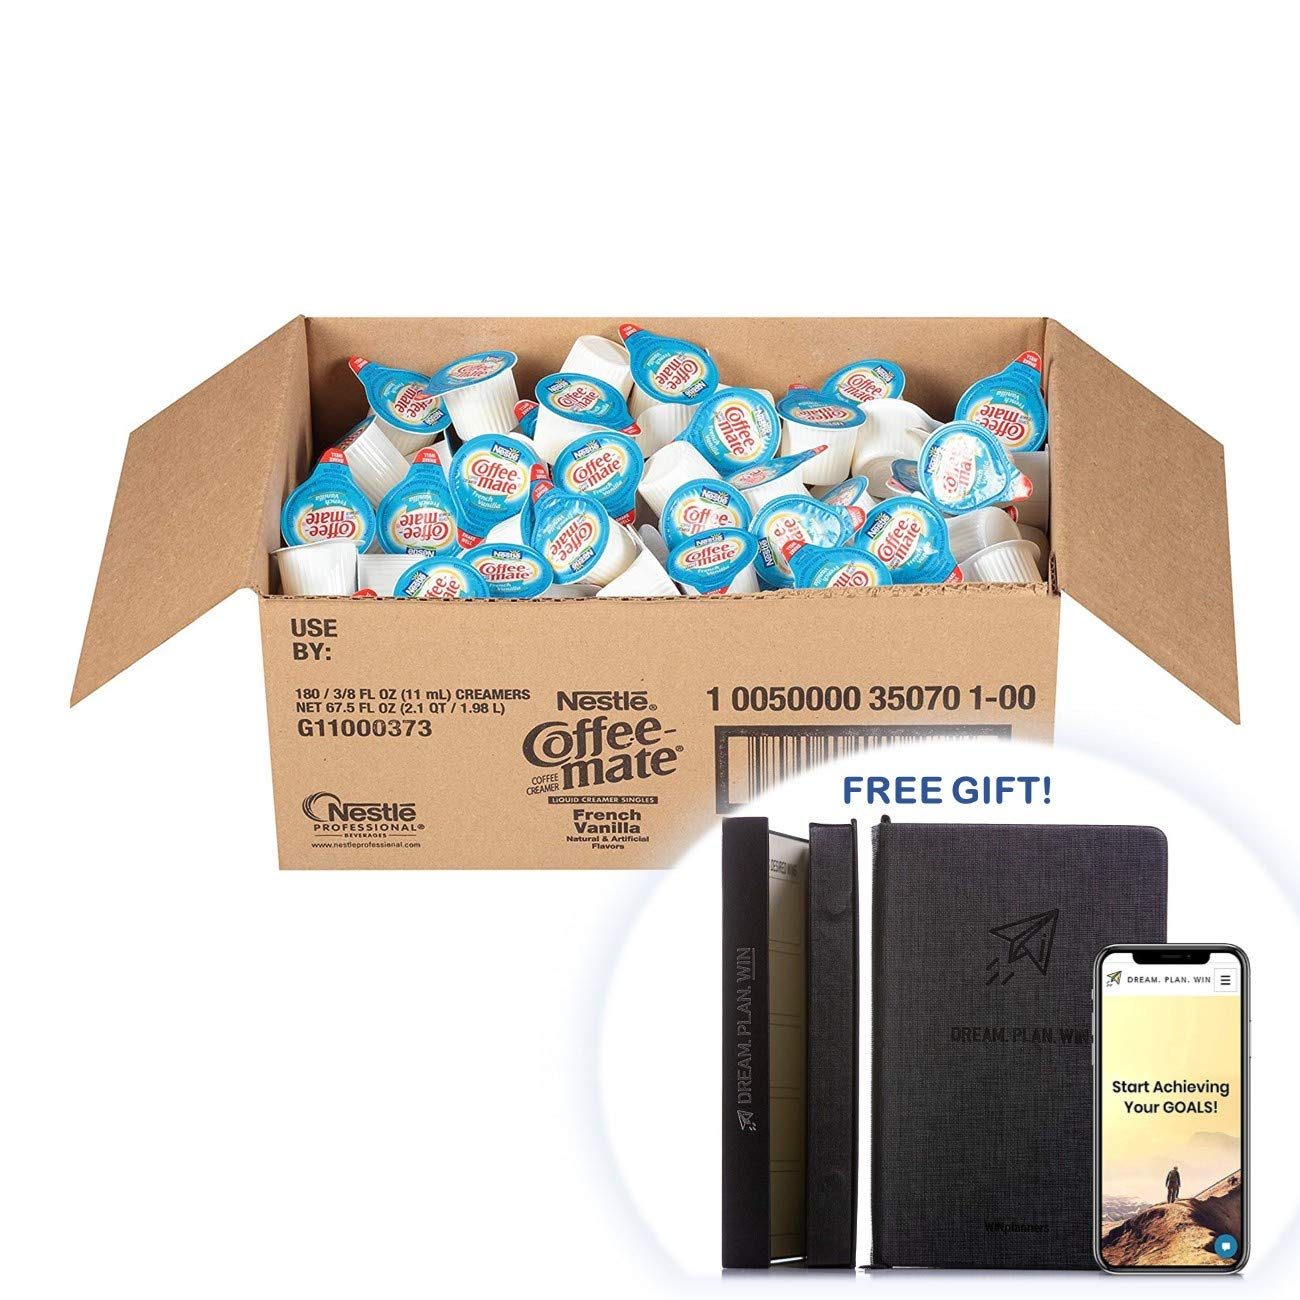 Coffee-mate 35070 Liquid Coffee Creamer, Mini Cups, French Vanilla (Box of 330) + FREE GIFT - PRODUCTIVITY PLANNER - Attain Your Dreams! (Coffee Creamers, Pack of 330)